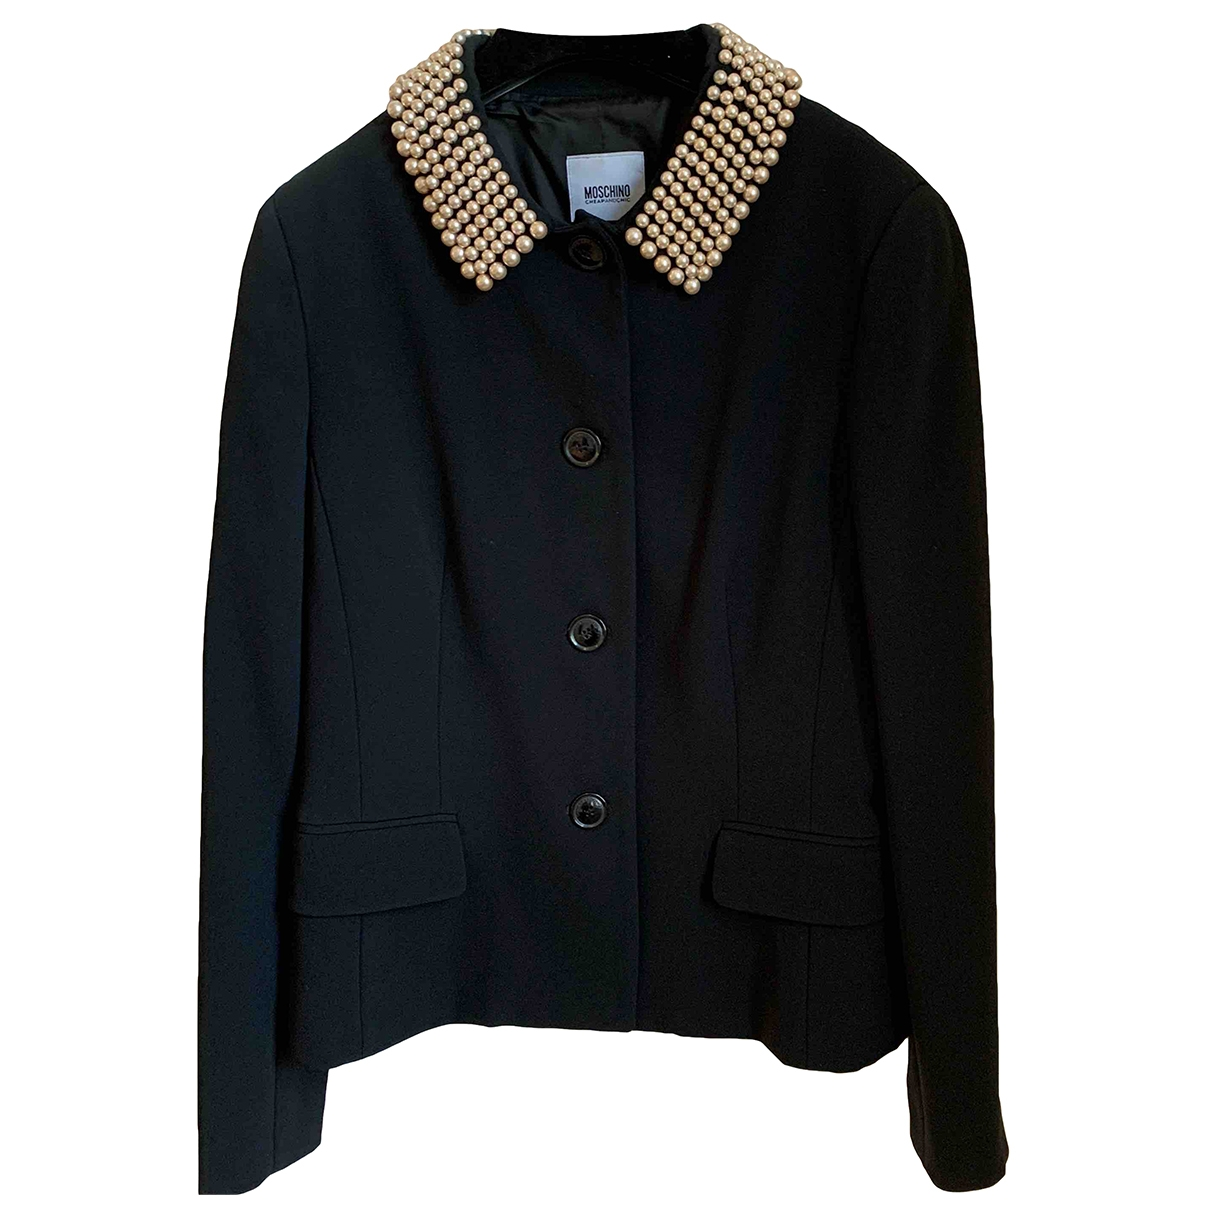 Moschino Cheap And Chic \N Black jacket for Women 46 IT